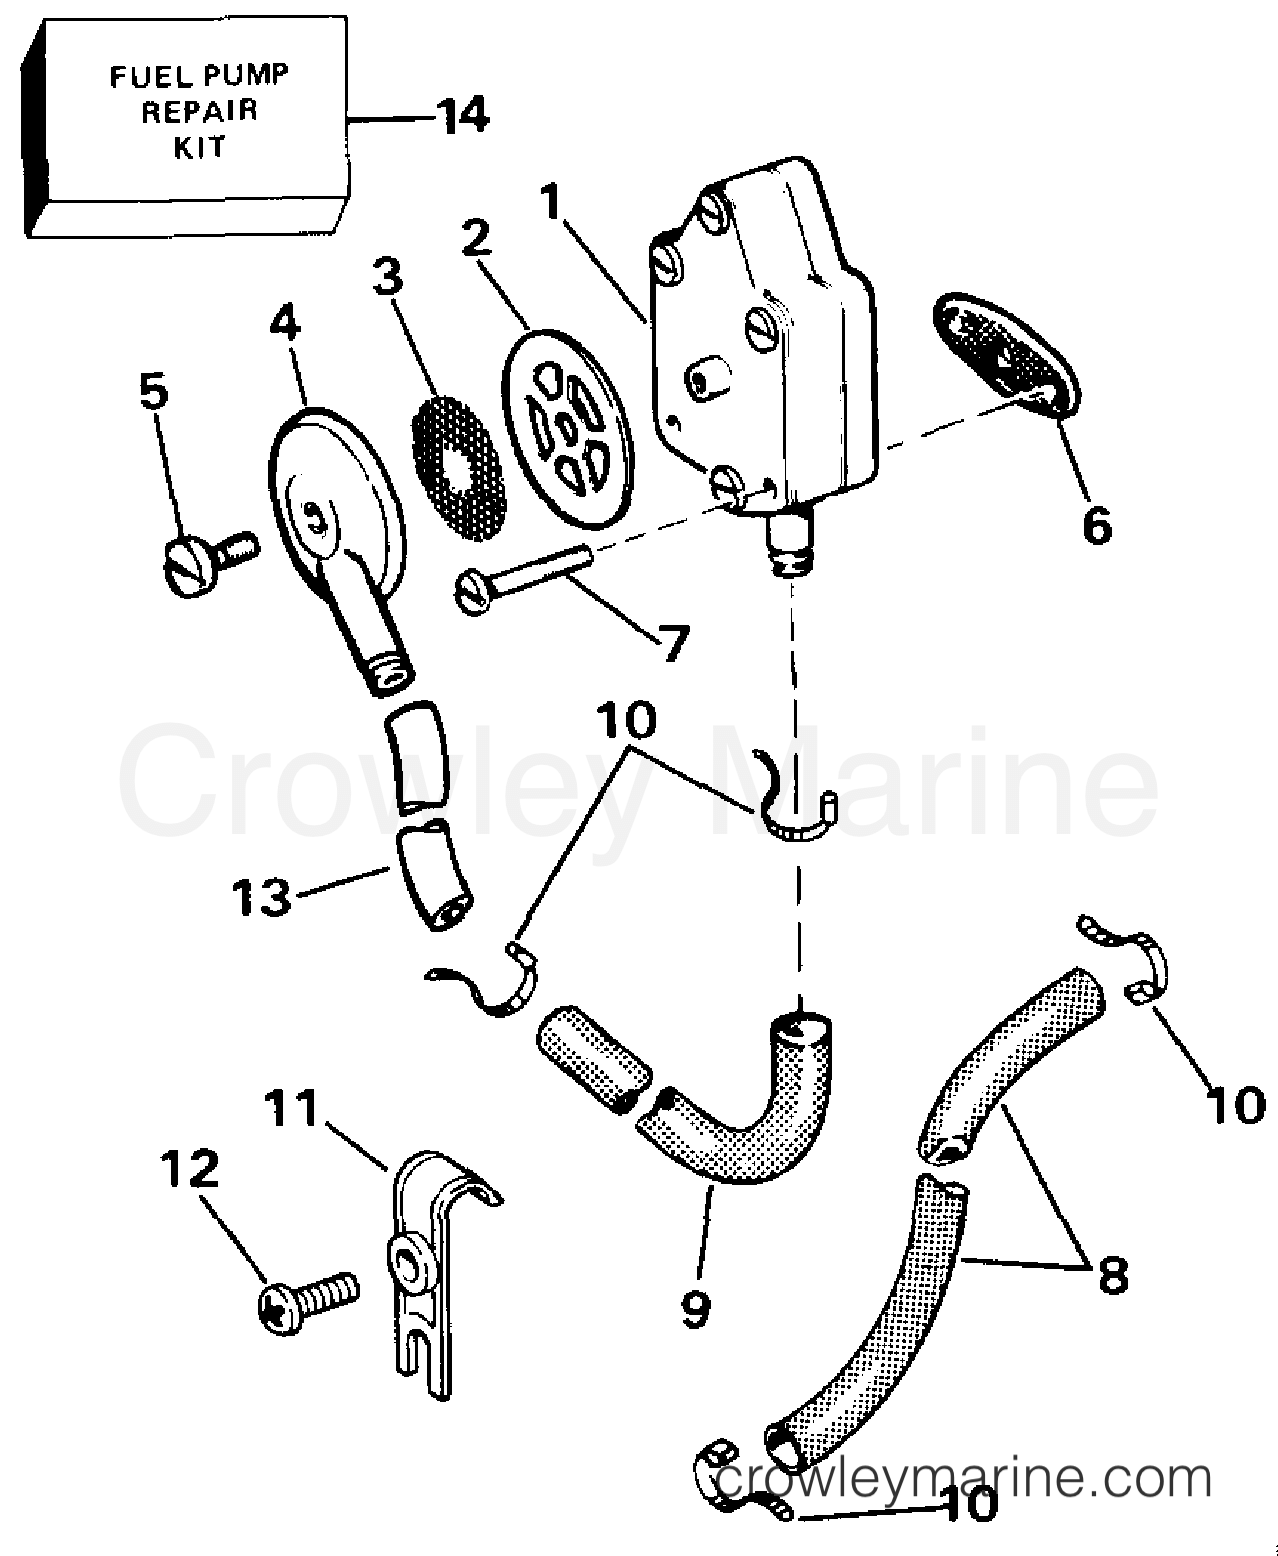 hight resolution of johnson 15 fuel pump diagram wiring diagram third level johnson 15 fuel pump diagram